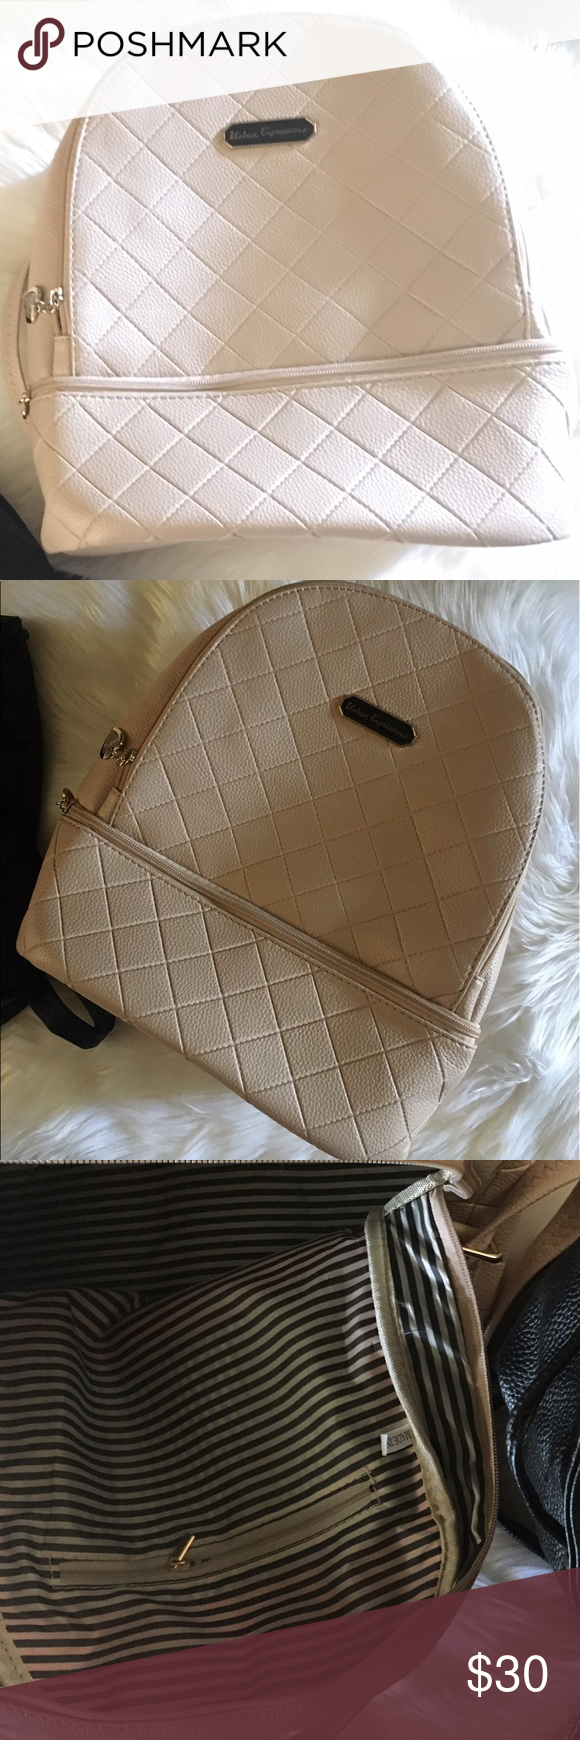 """New Faux Leather Backpack Plenty of room inside. Zipper closure. 1 slip pocket inside. Adjustable straps in the back. (NOT ZARA! just tagged for views) Dimensions H 13"""" x W 10"""" x D 12"""" inches Zara Bags Backpacks"""